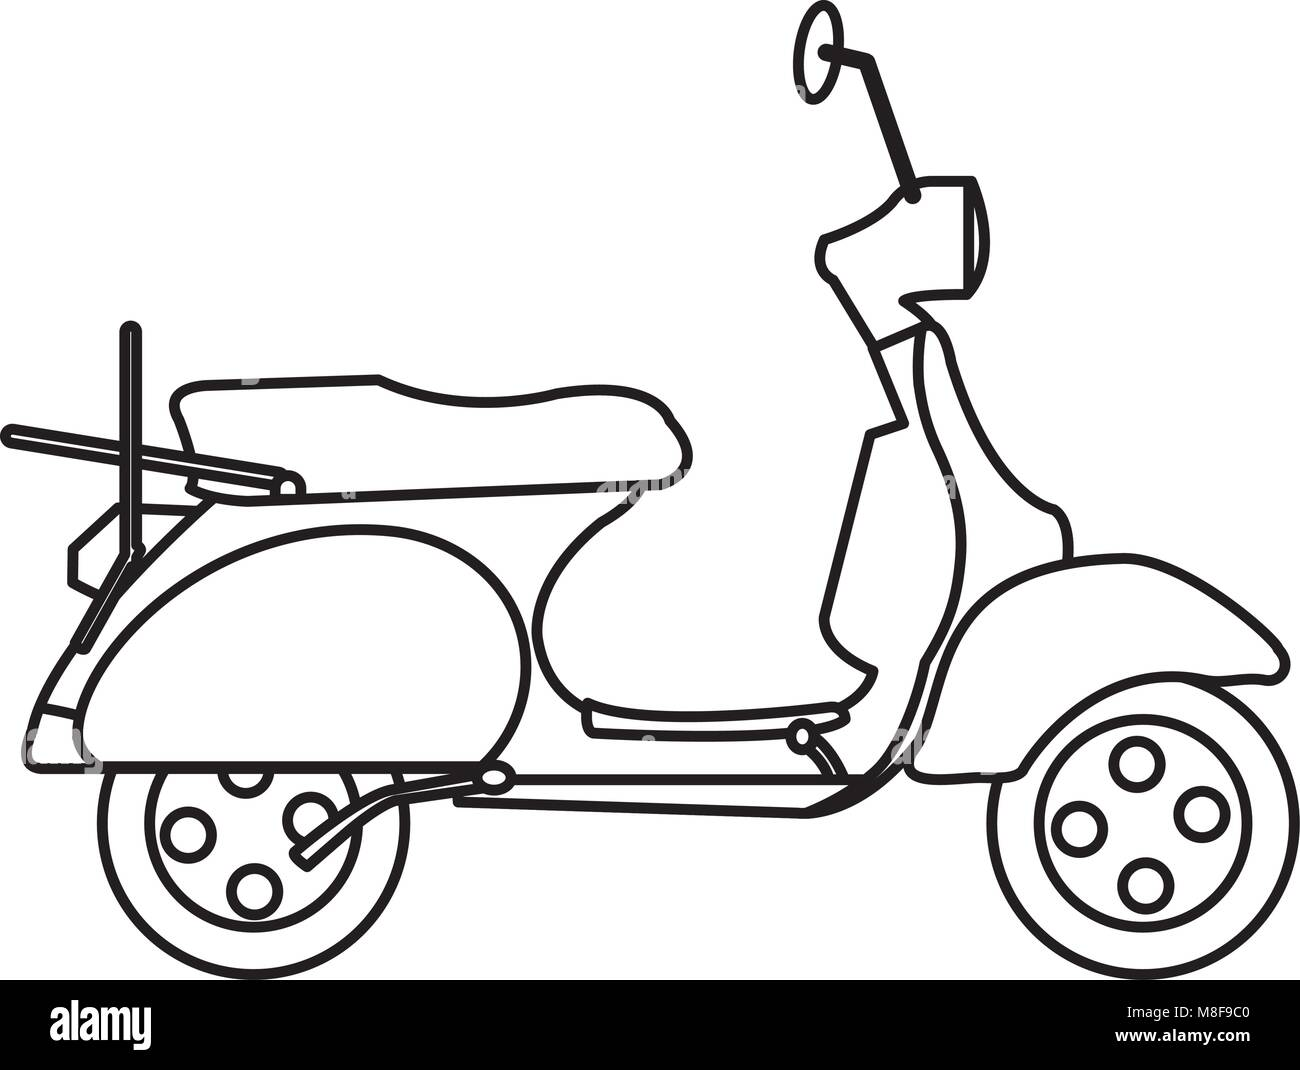 line motocycle transportation travel with mirror and wheels - Stock Vector